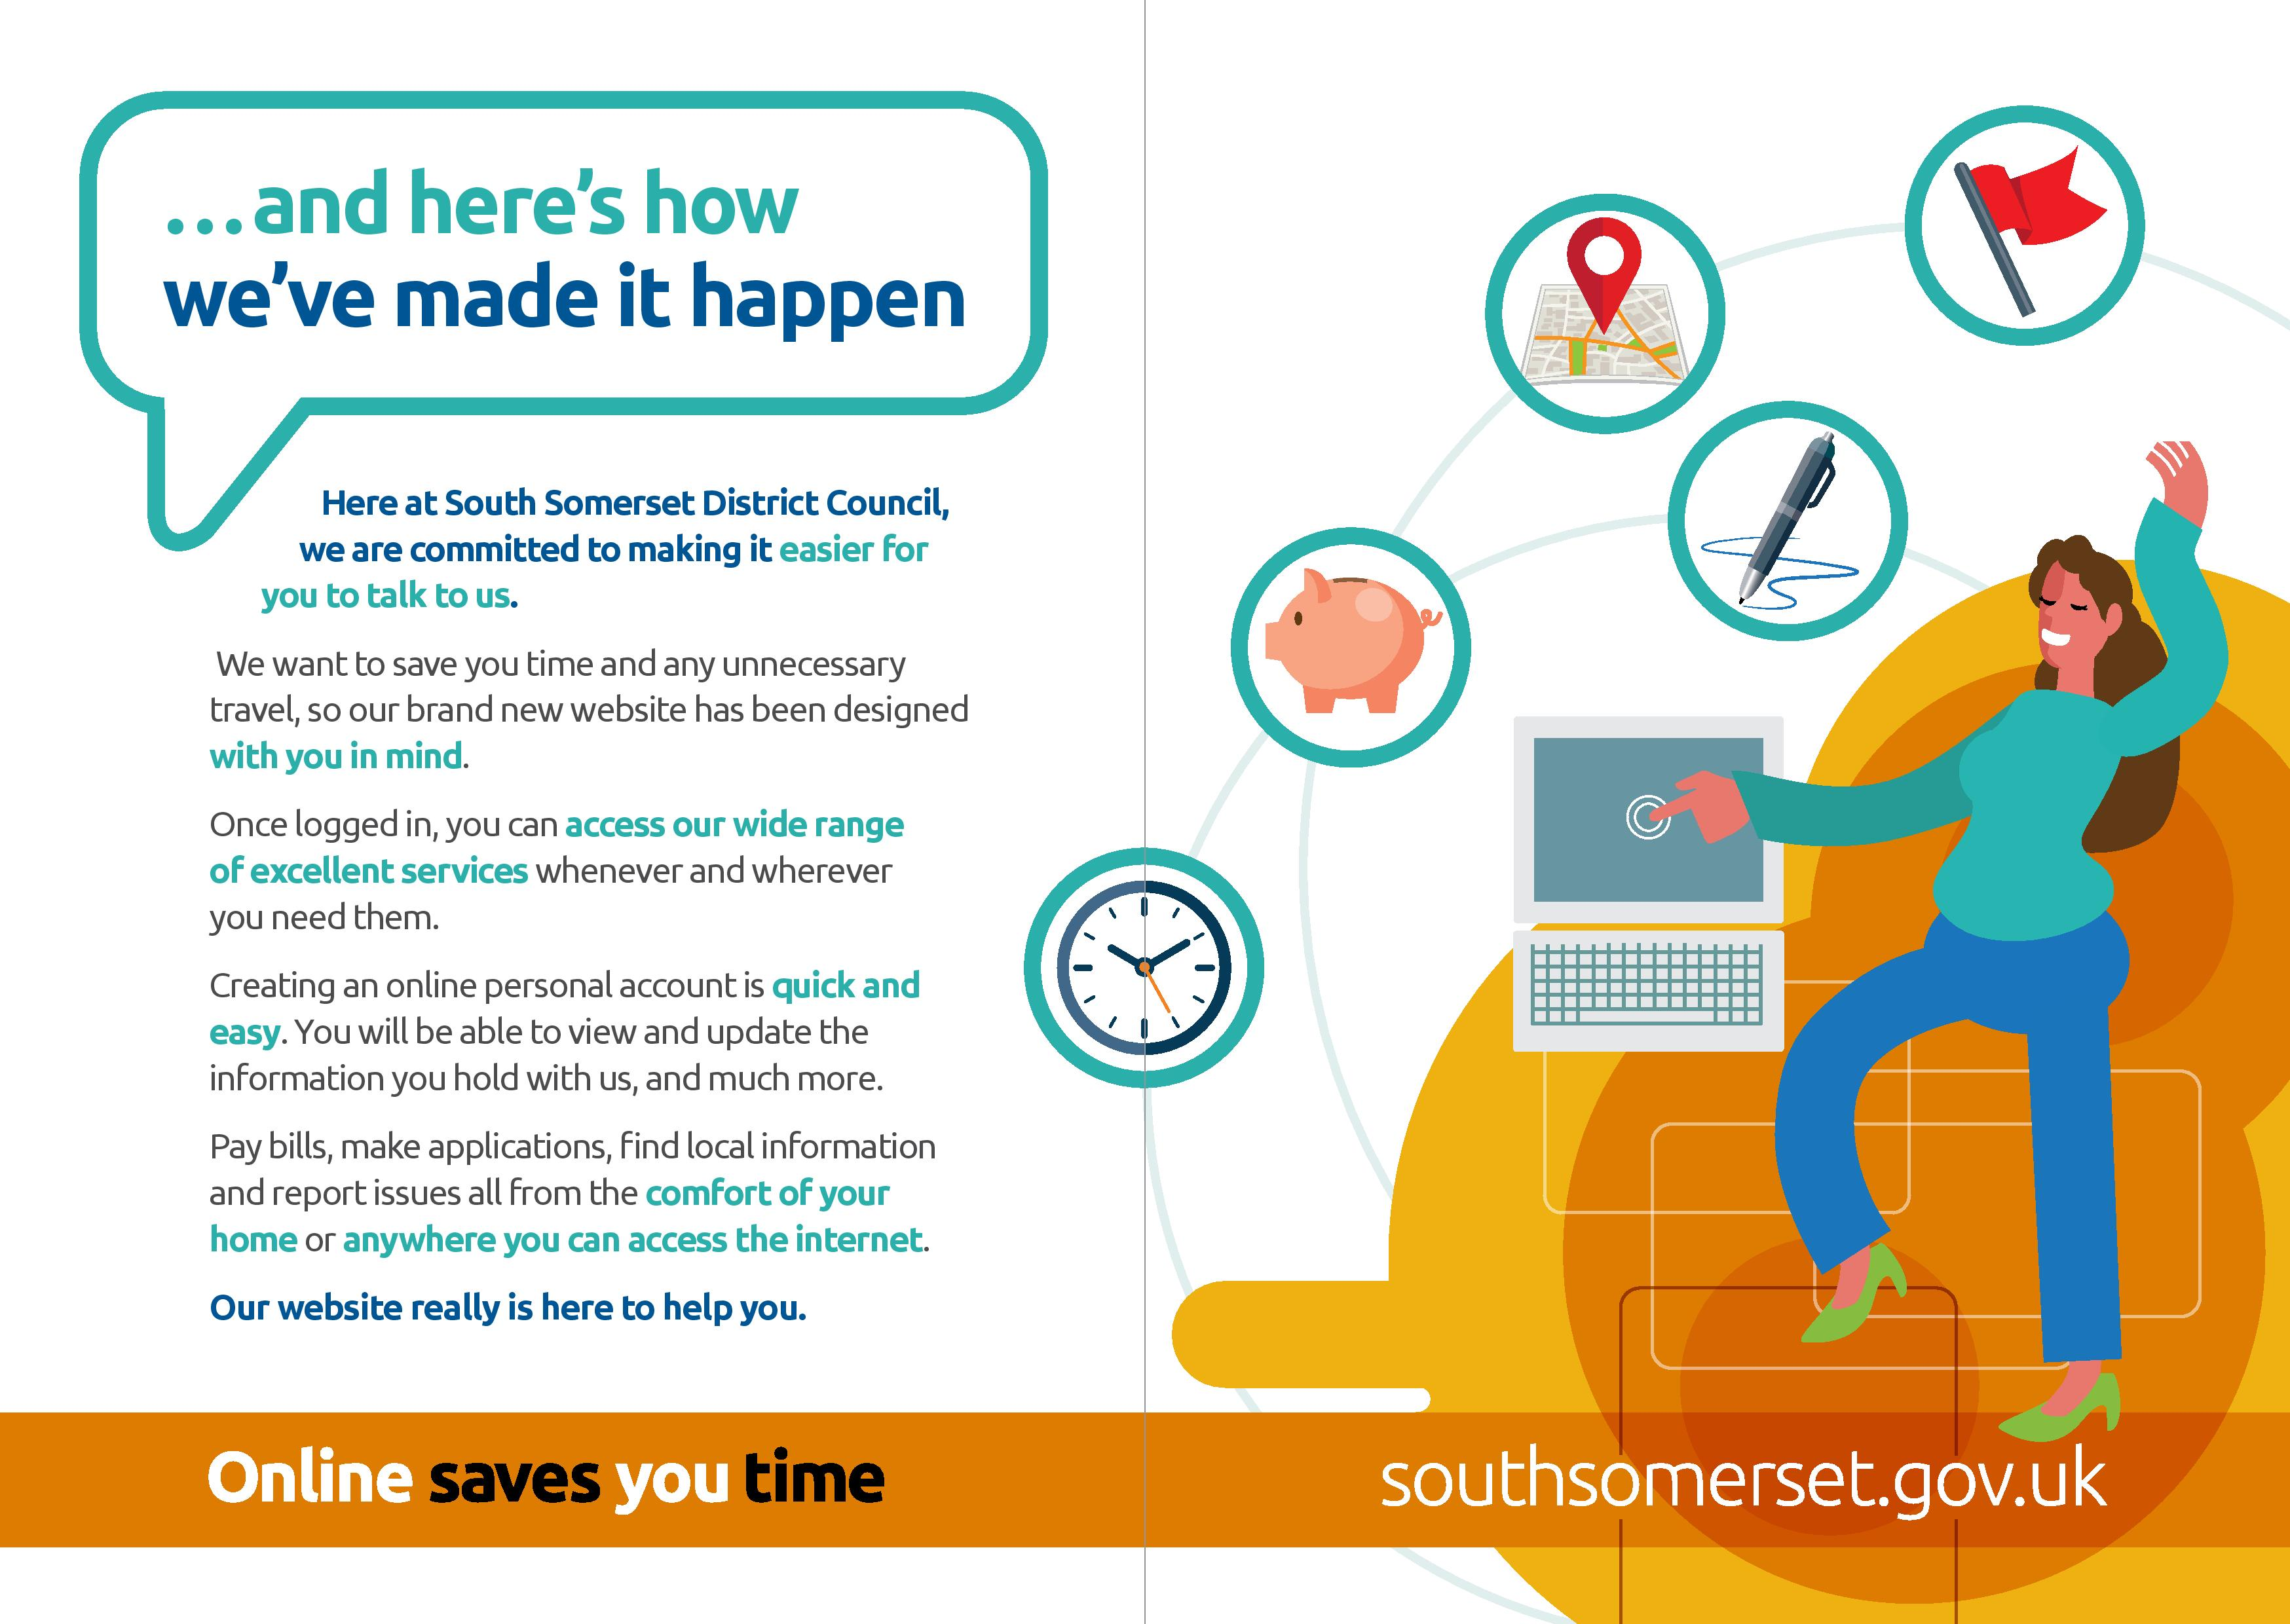 New To You >> How You Can Help Us And Our Promise To You As South Somerset